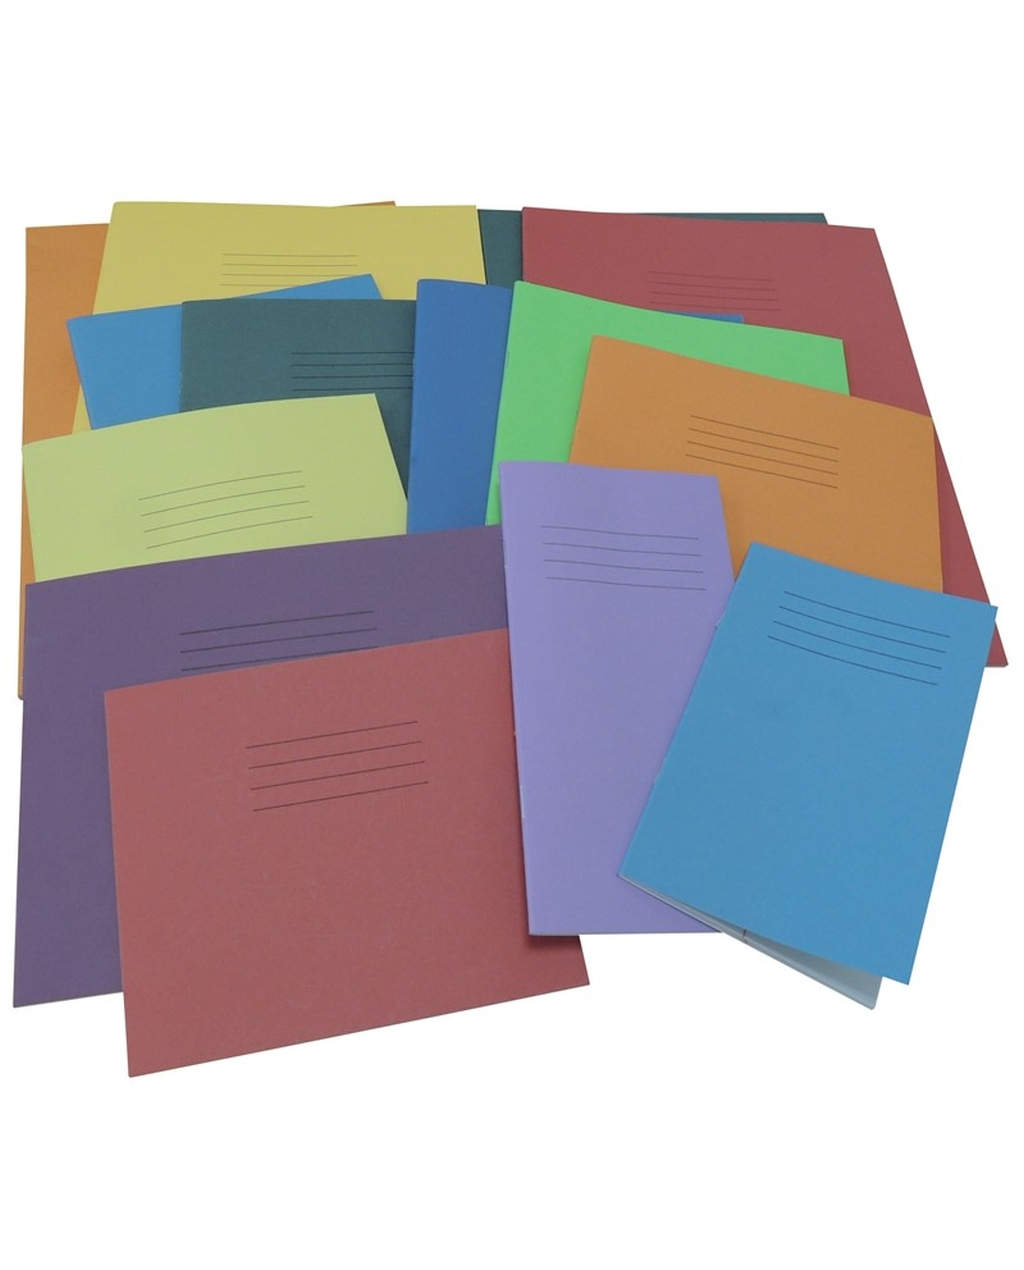 Exercise Book 10 x 12 (254 x 305mm) Landscape Assorted Cover Colours Plain - No Ruling 32 Pages